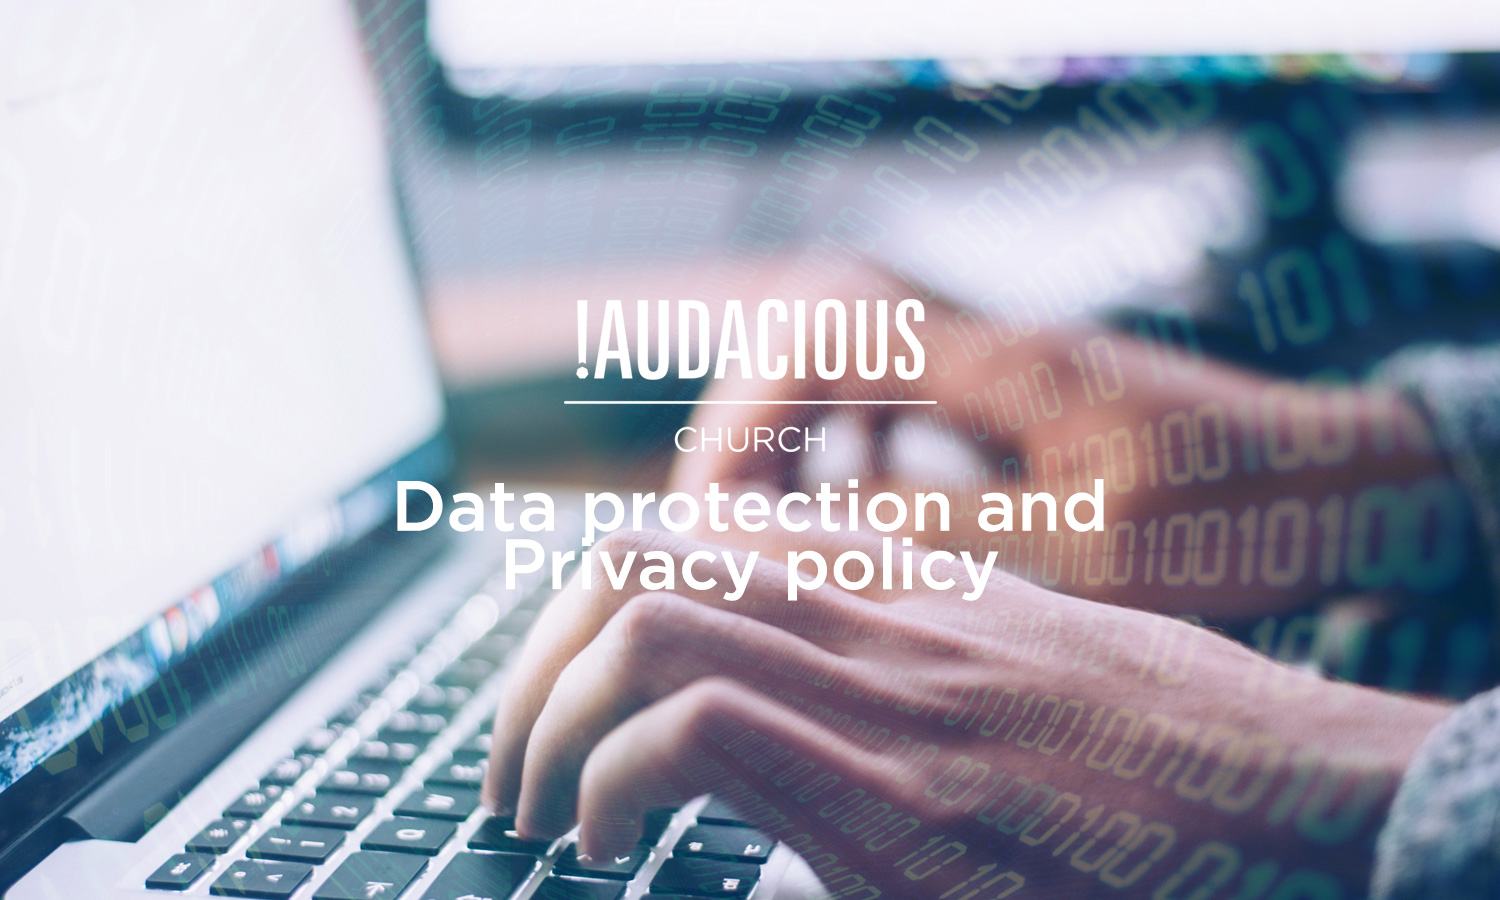 The !Audacious Church - Data protection and privacy policy